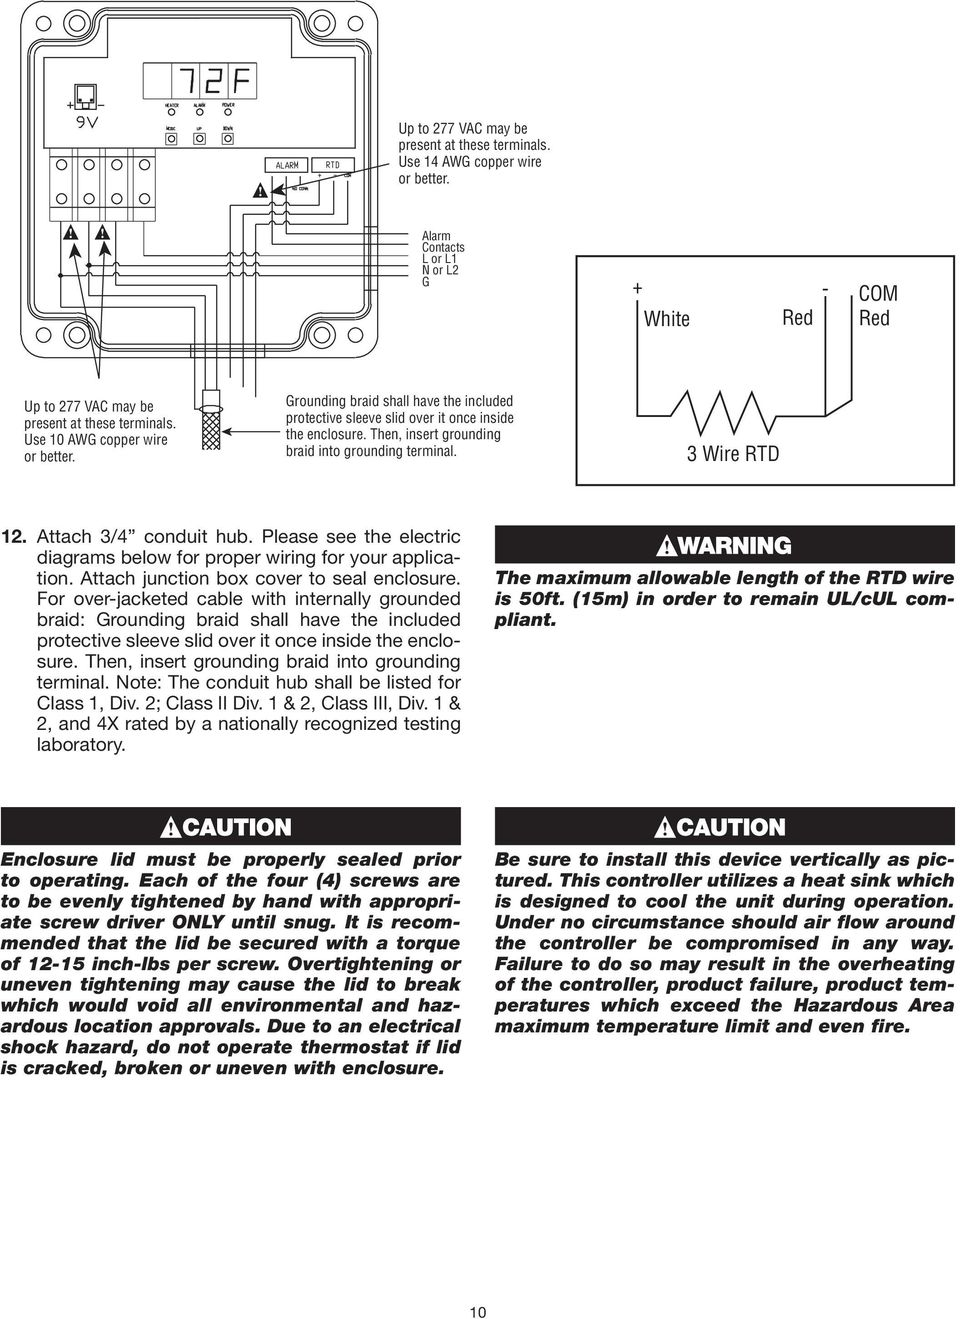 Installation Instructions Dts Haz Dc For Use With Self 3 Wire Rtd Wiring Diagram Attach 4 Conduit Hub Please See The Electric Diagrams Below Proper